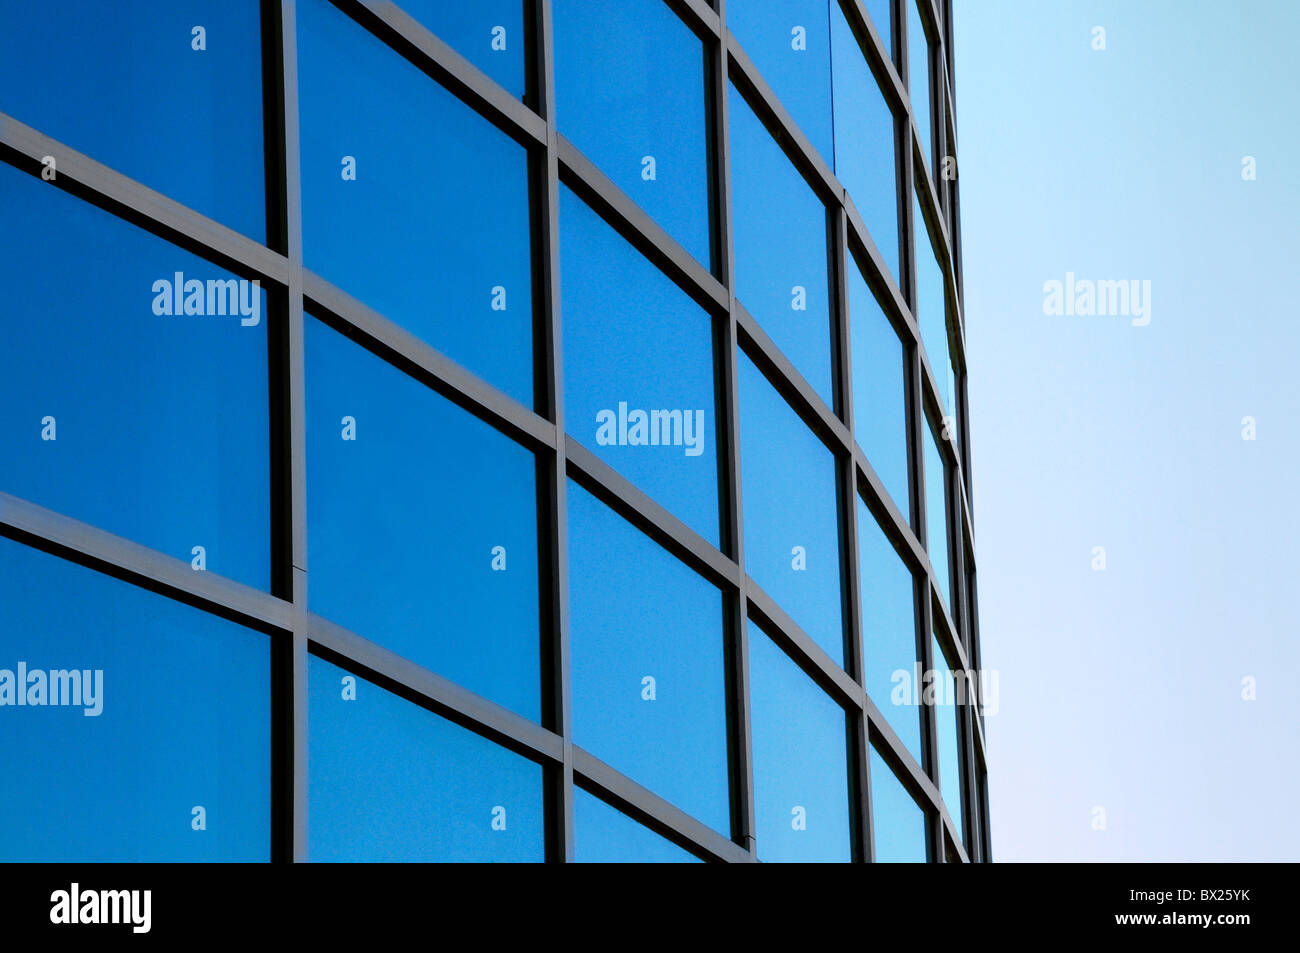 Curved exterior windows of a commercial office building reflecting a blue sky - Stock Image